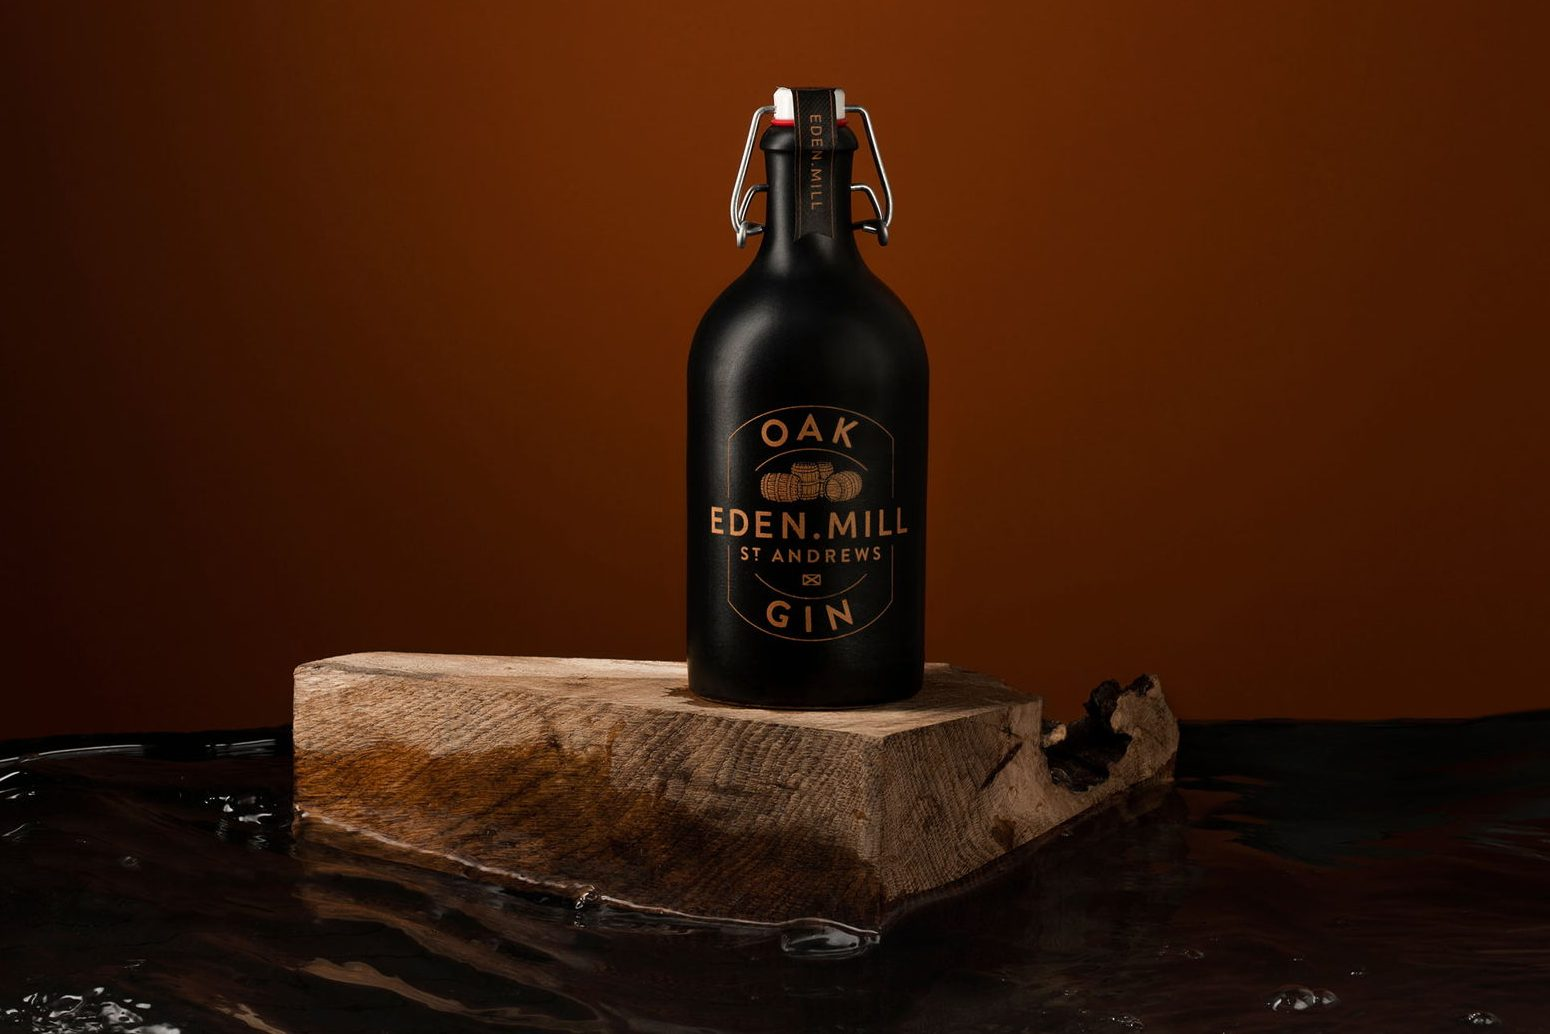 A black ceramic bottle of eden mill oak gin on top of a wooden board, in front of a red-brown background.